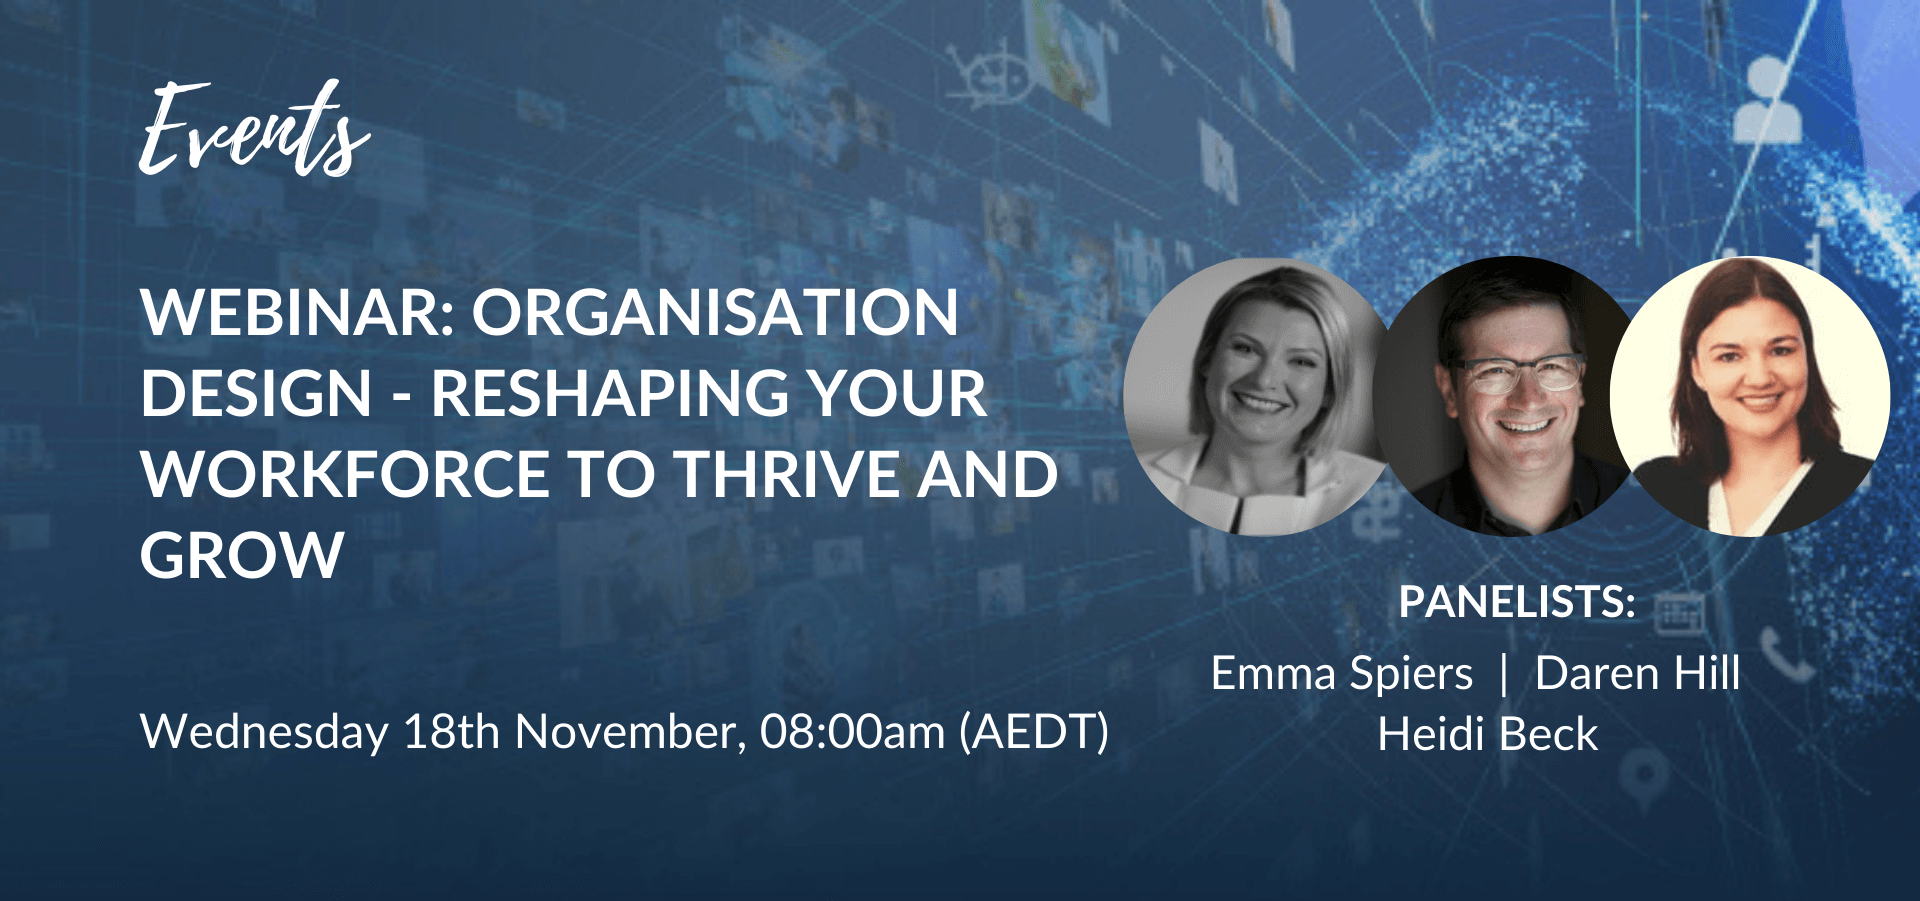 Webinar: Organisation Design - Reshaping Your Workforce To Thrive And Grow